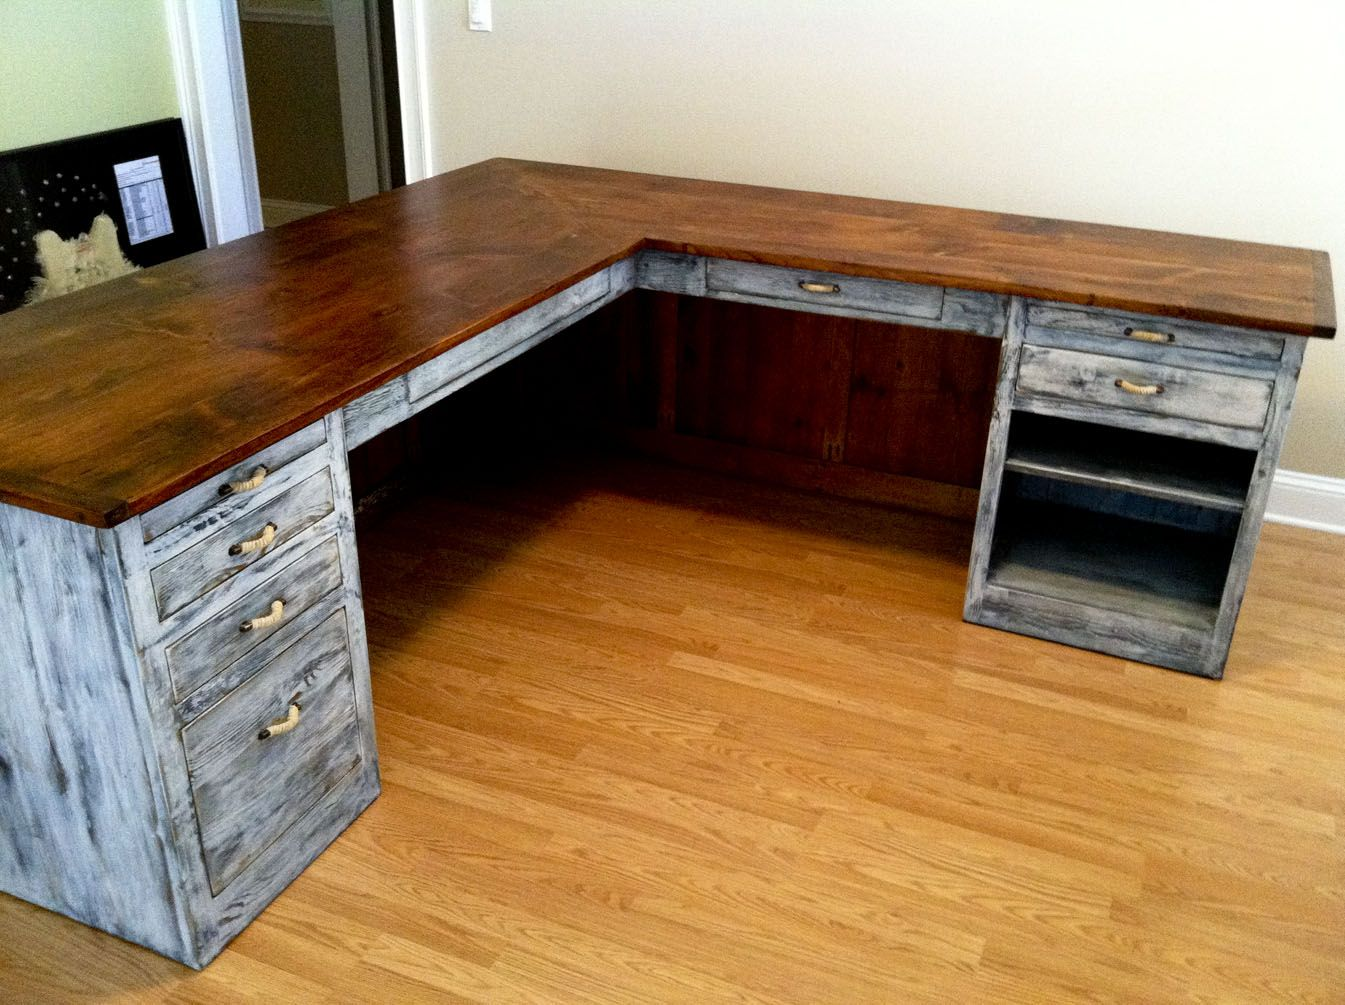 L Shaped Desk From Furniture The Barn See More At